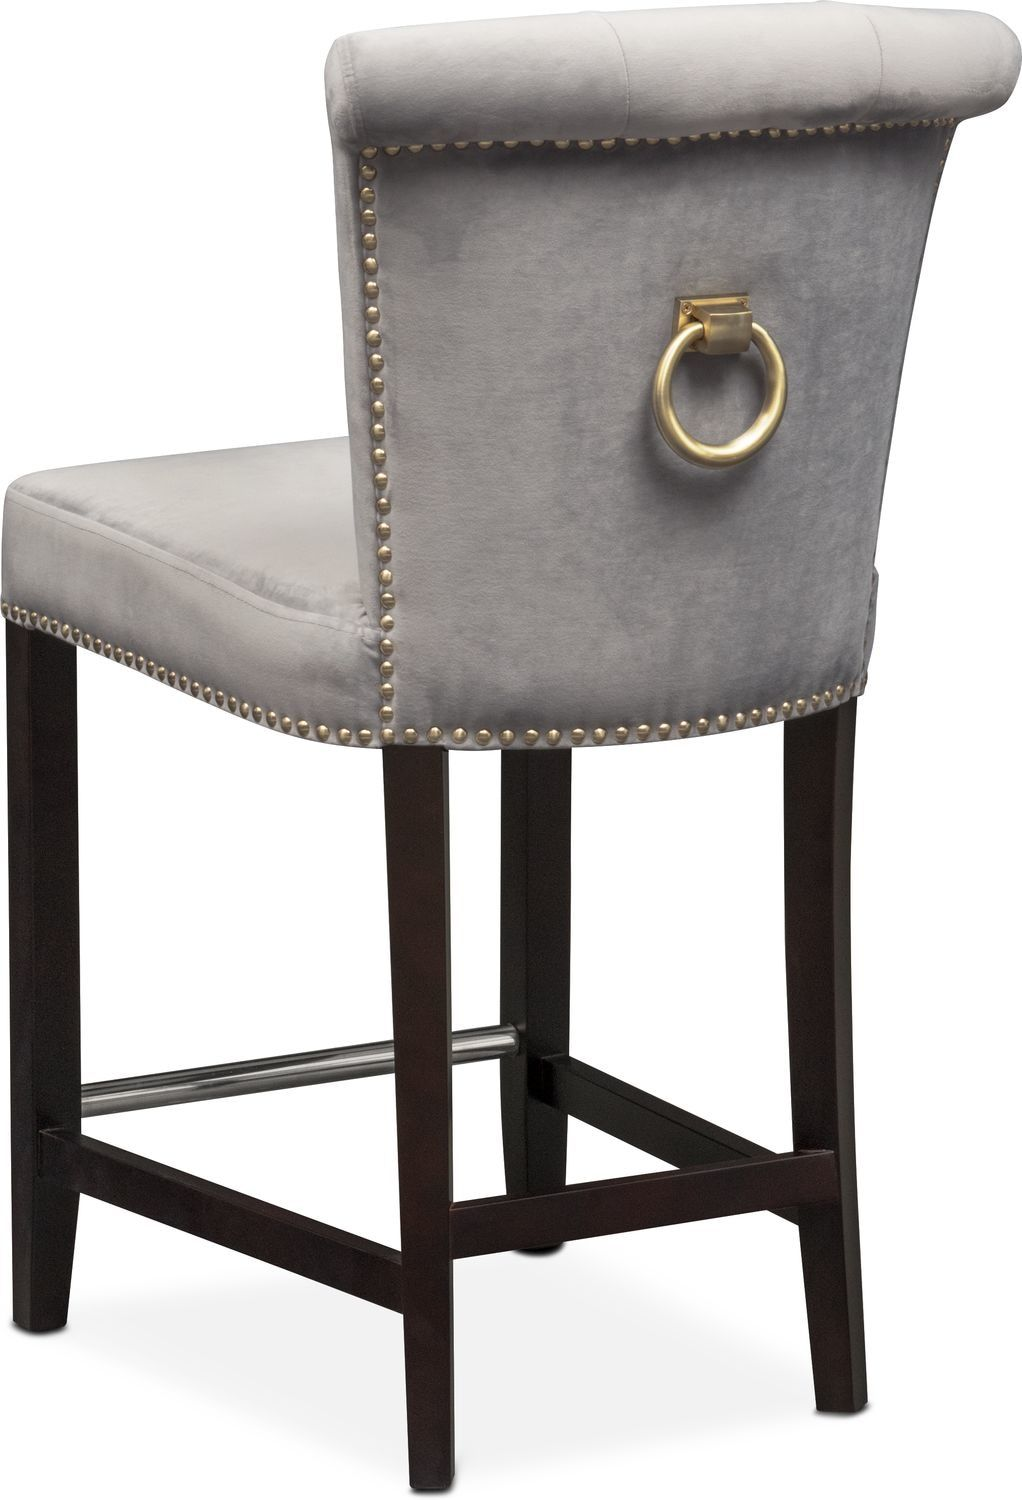 Amazing Calloway Counter Height Stool Gray Gold American Machost Co Dining Chair Design Ideas Machostcouk